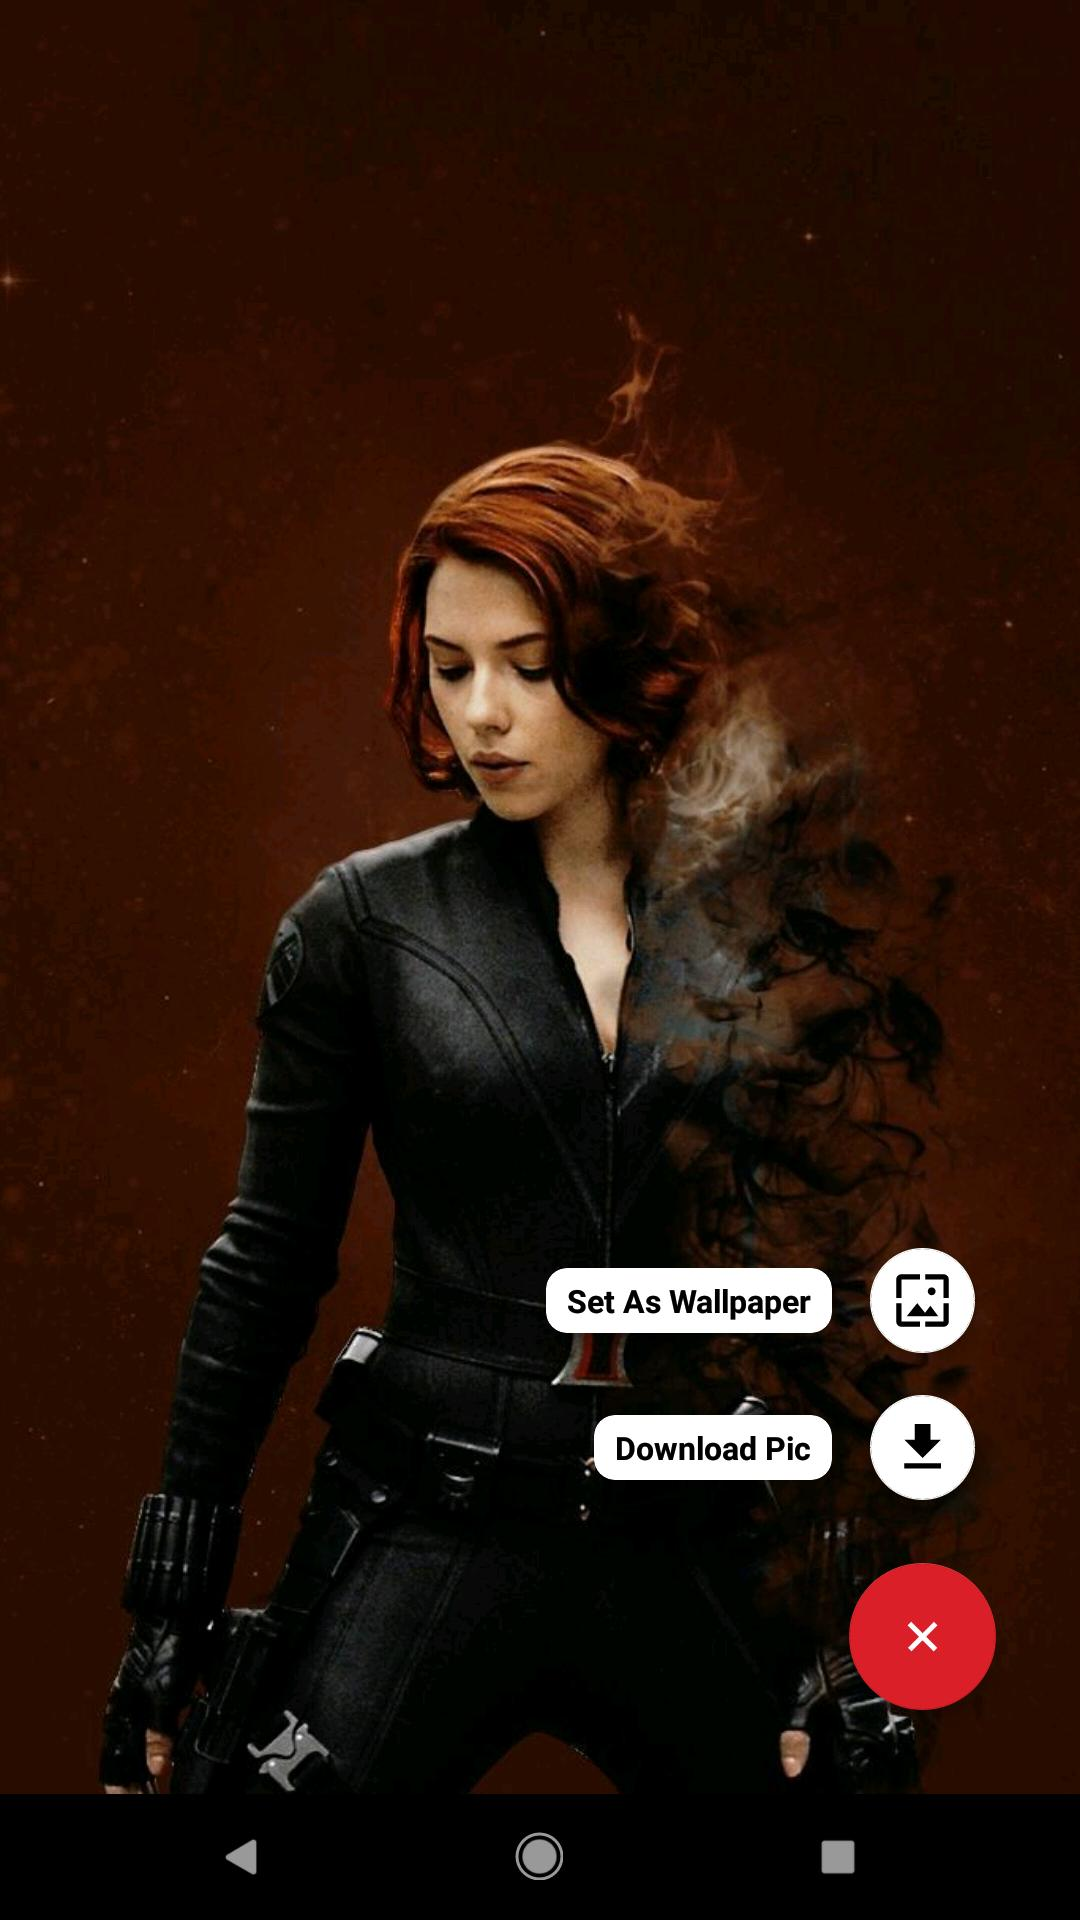 Black Widow Hd Wallpapers 2018 For Android Apk Download